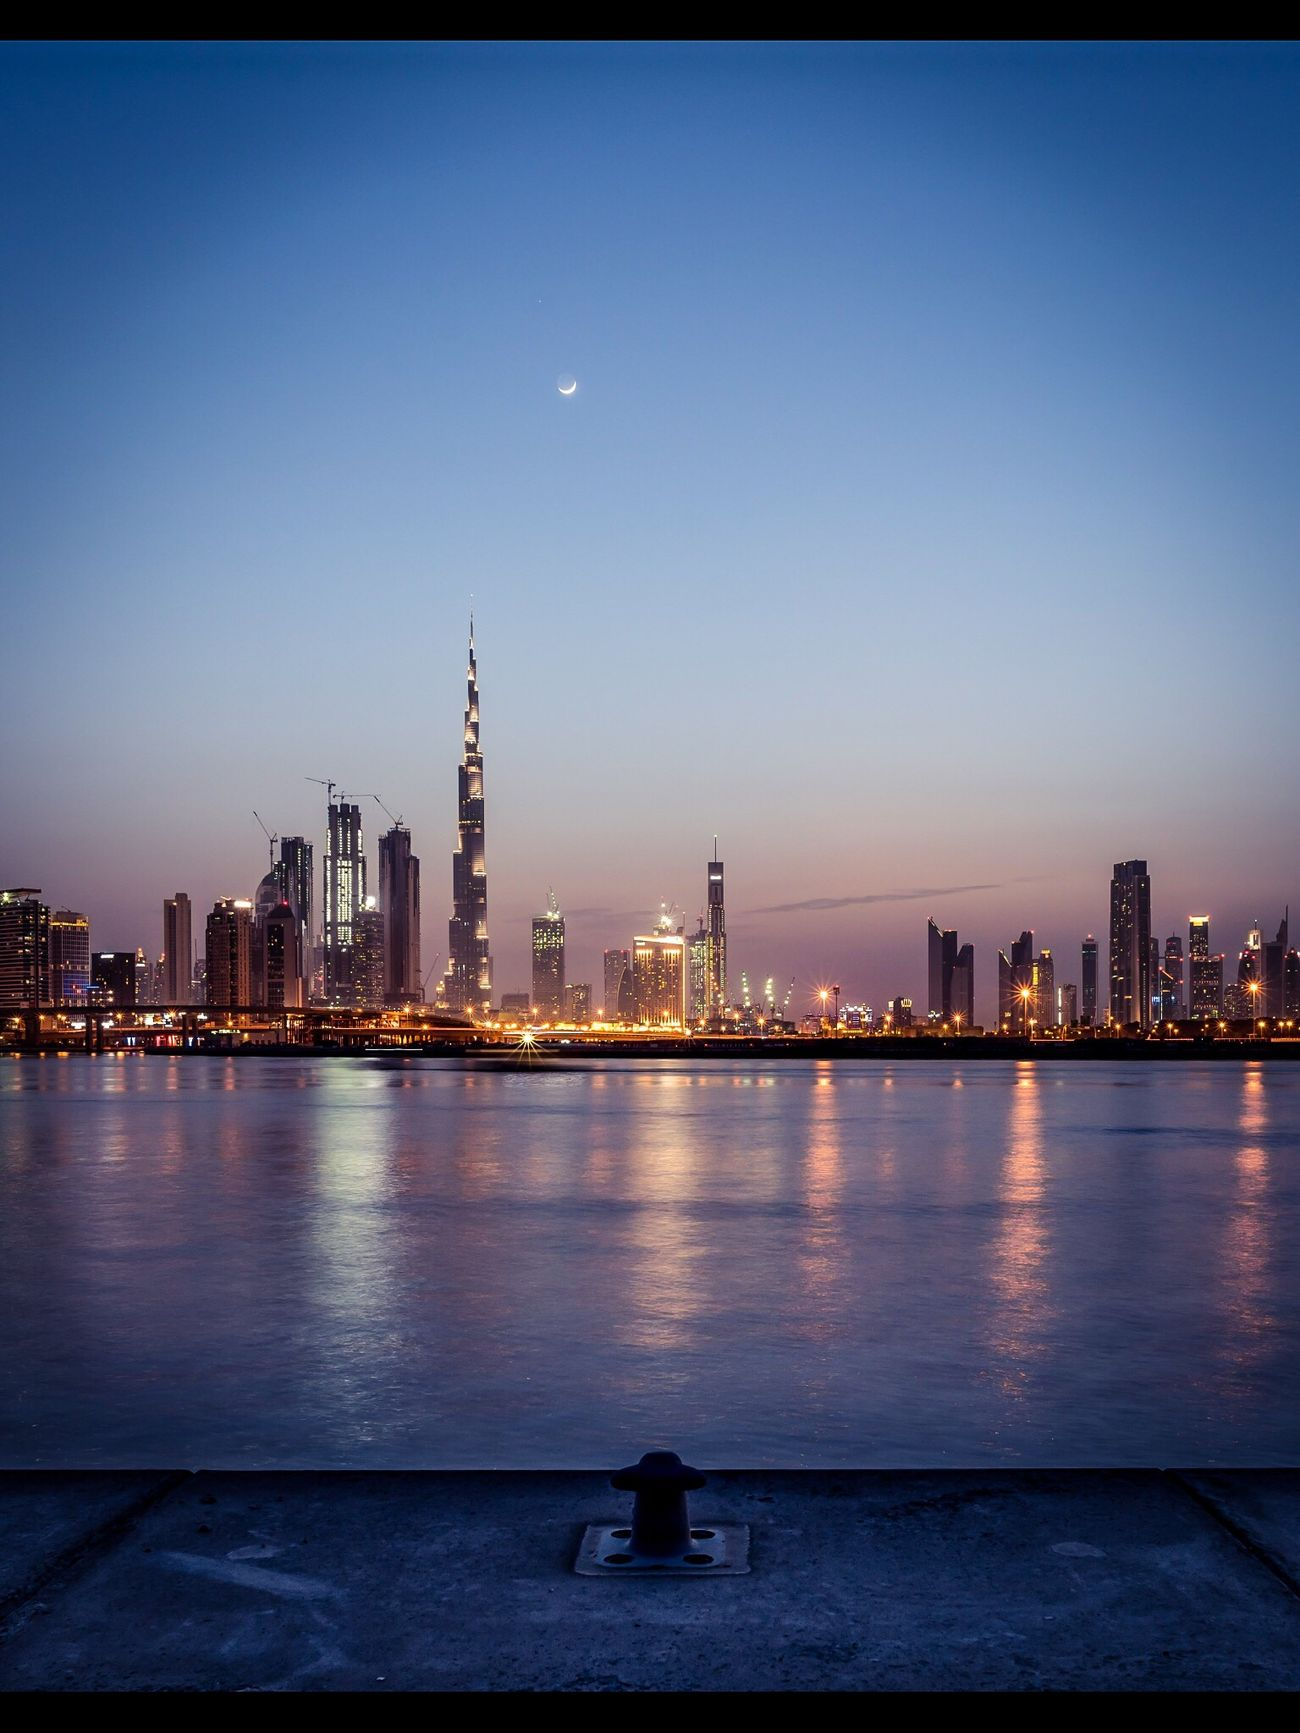 Sunset on Downtown Dubai, United Arab Emirates Architecture Building Exterior Built Structure Skyscraper City Tower Night Travel Destinations Cityscape Illuminated Urban Skyline Modern Sky Water River Clear Sky Outdoors Moon Tall No People